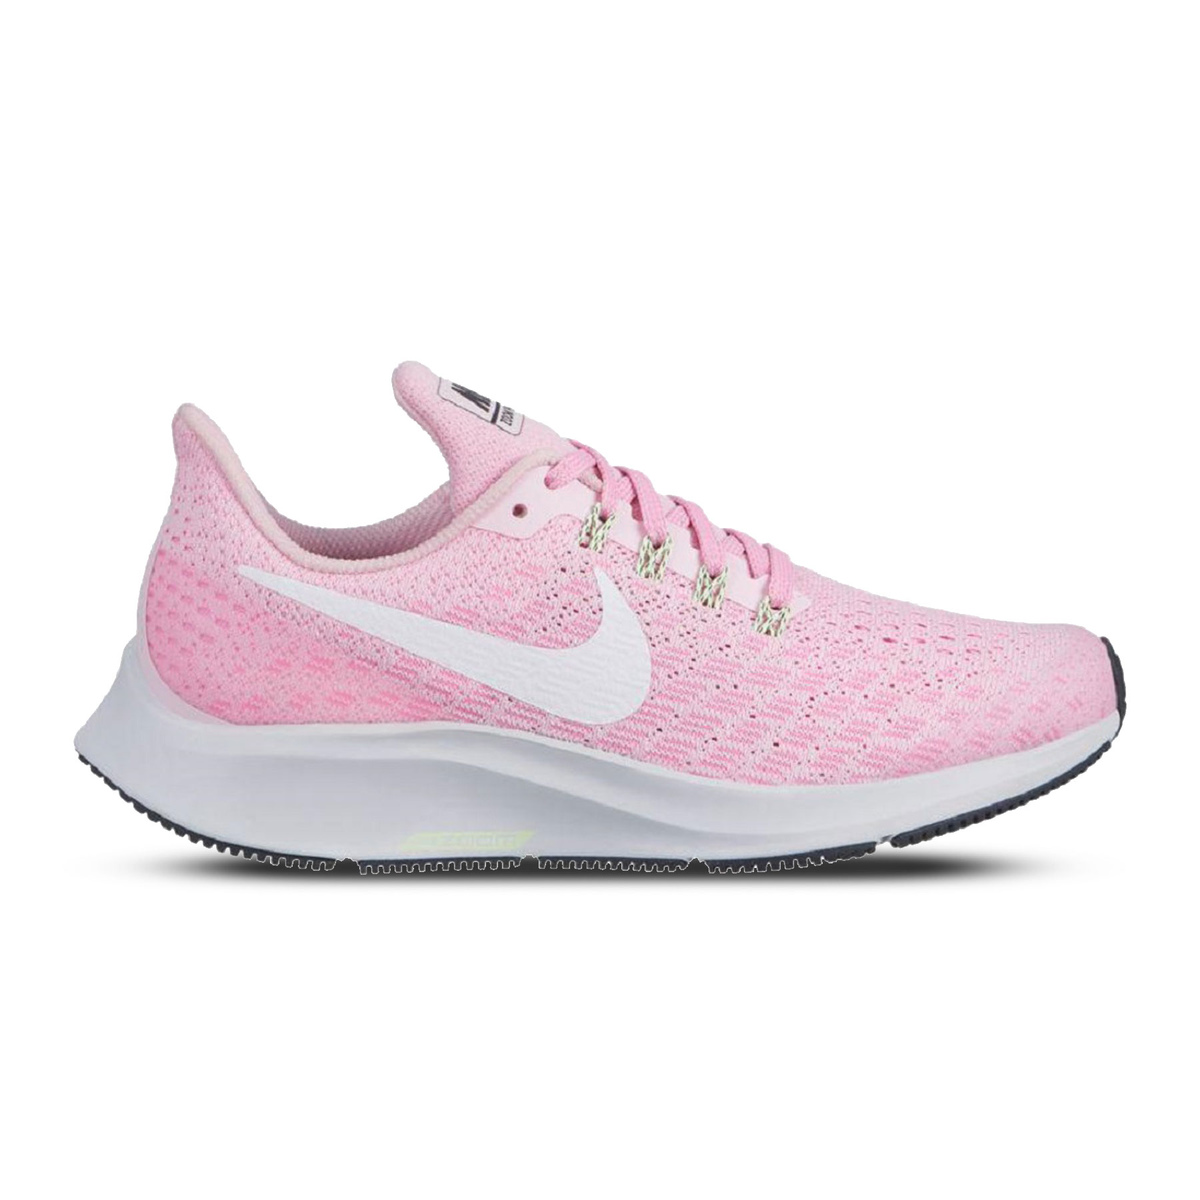 Nike air zoom pegasus 35 scarpe running donna amazon shoes rosa sportivo